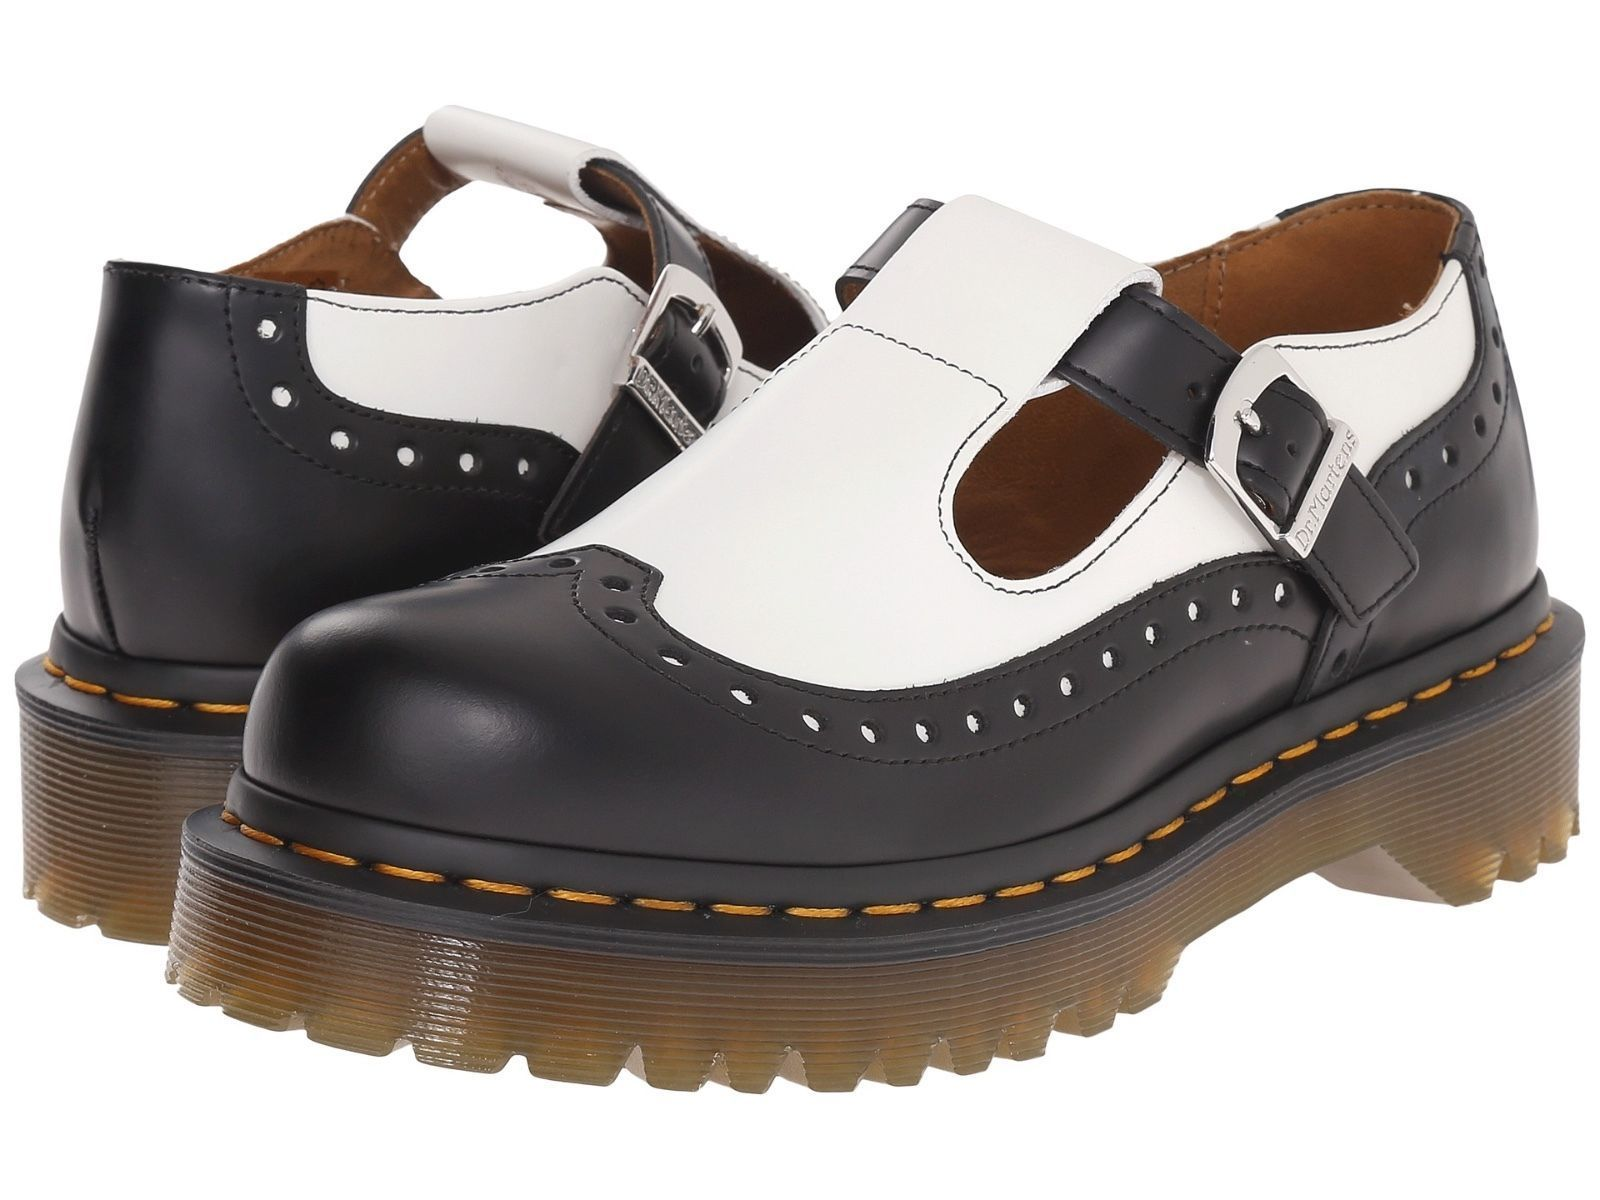 d68de39c272 Dr. Martens Women`S Demize Mary Jane Bethan Aggy Style Brogue T Bar All  Sizes